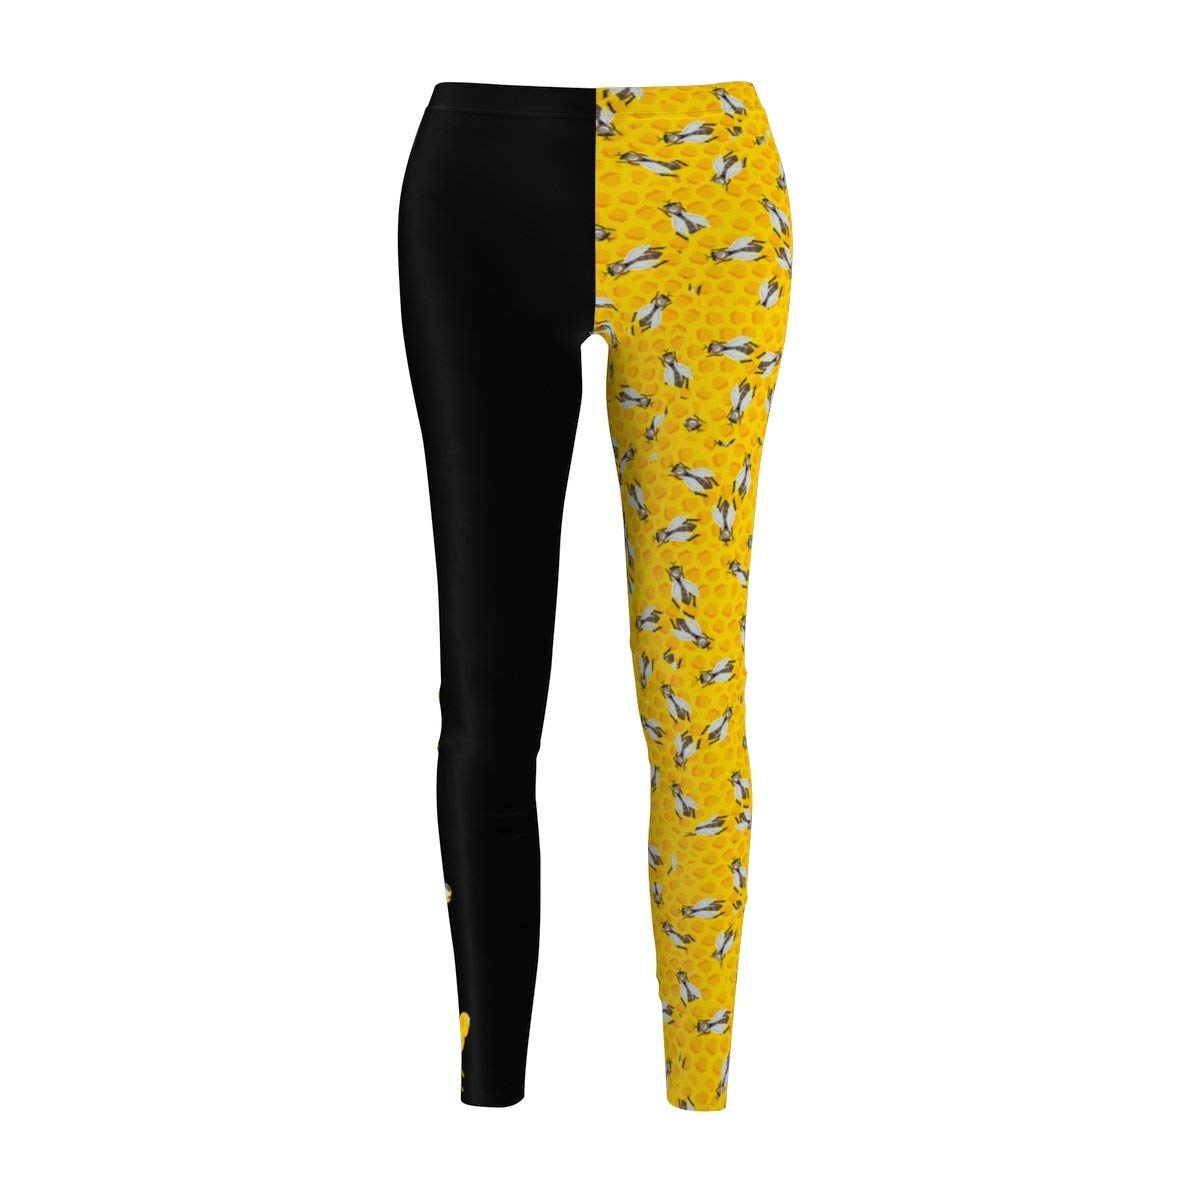 Fine Vintage Life Bey Hive Honey Comb Slay ONTRII Women's All Over Leggings - Two Tone Black by Fine Vintage Life (Image #2)